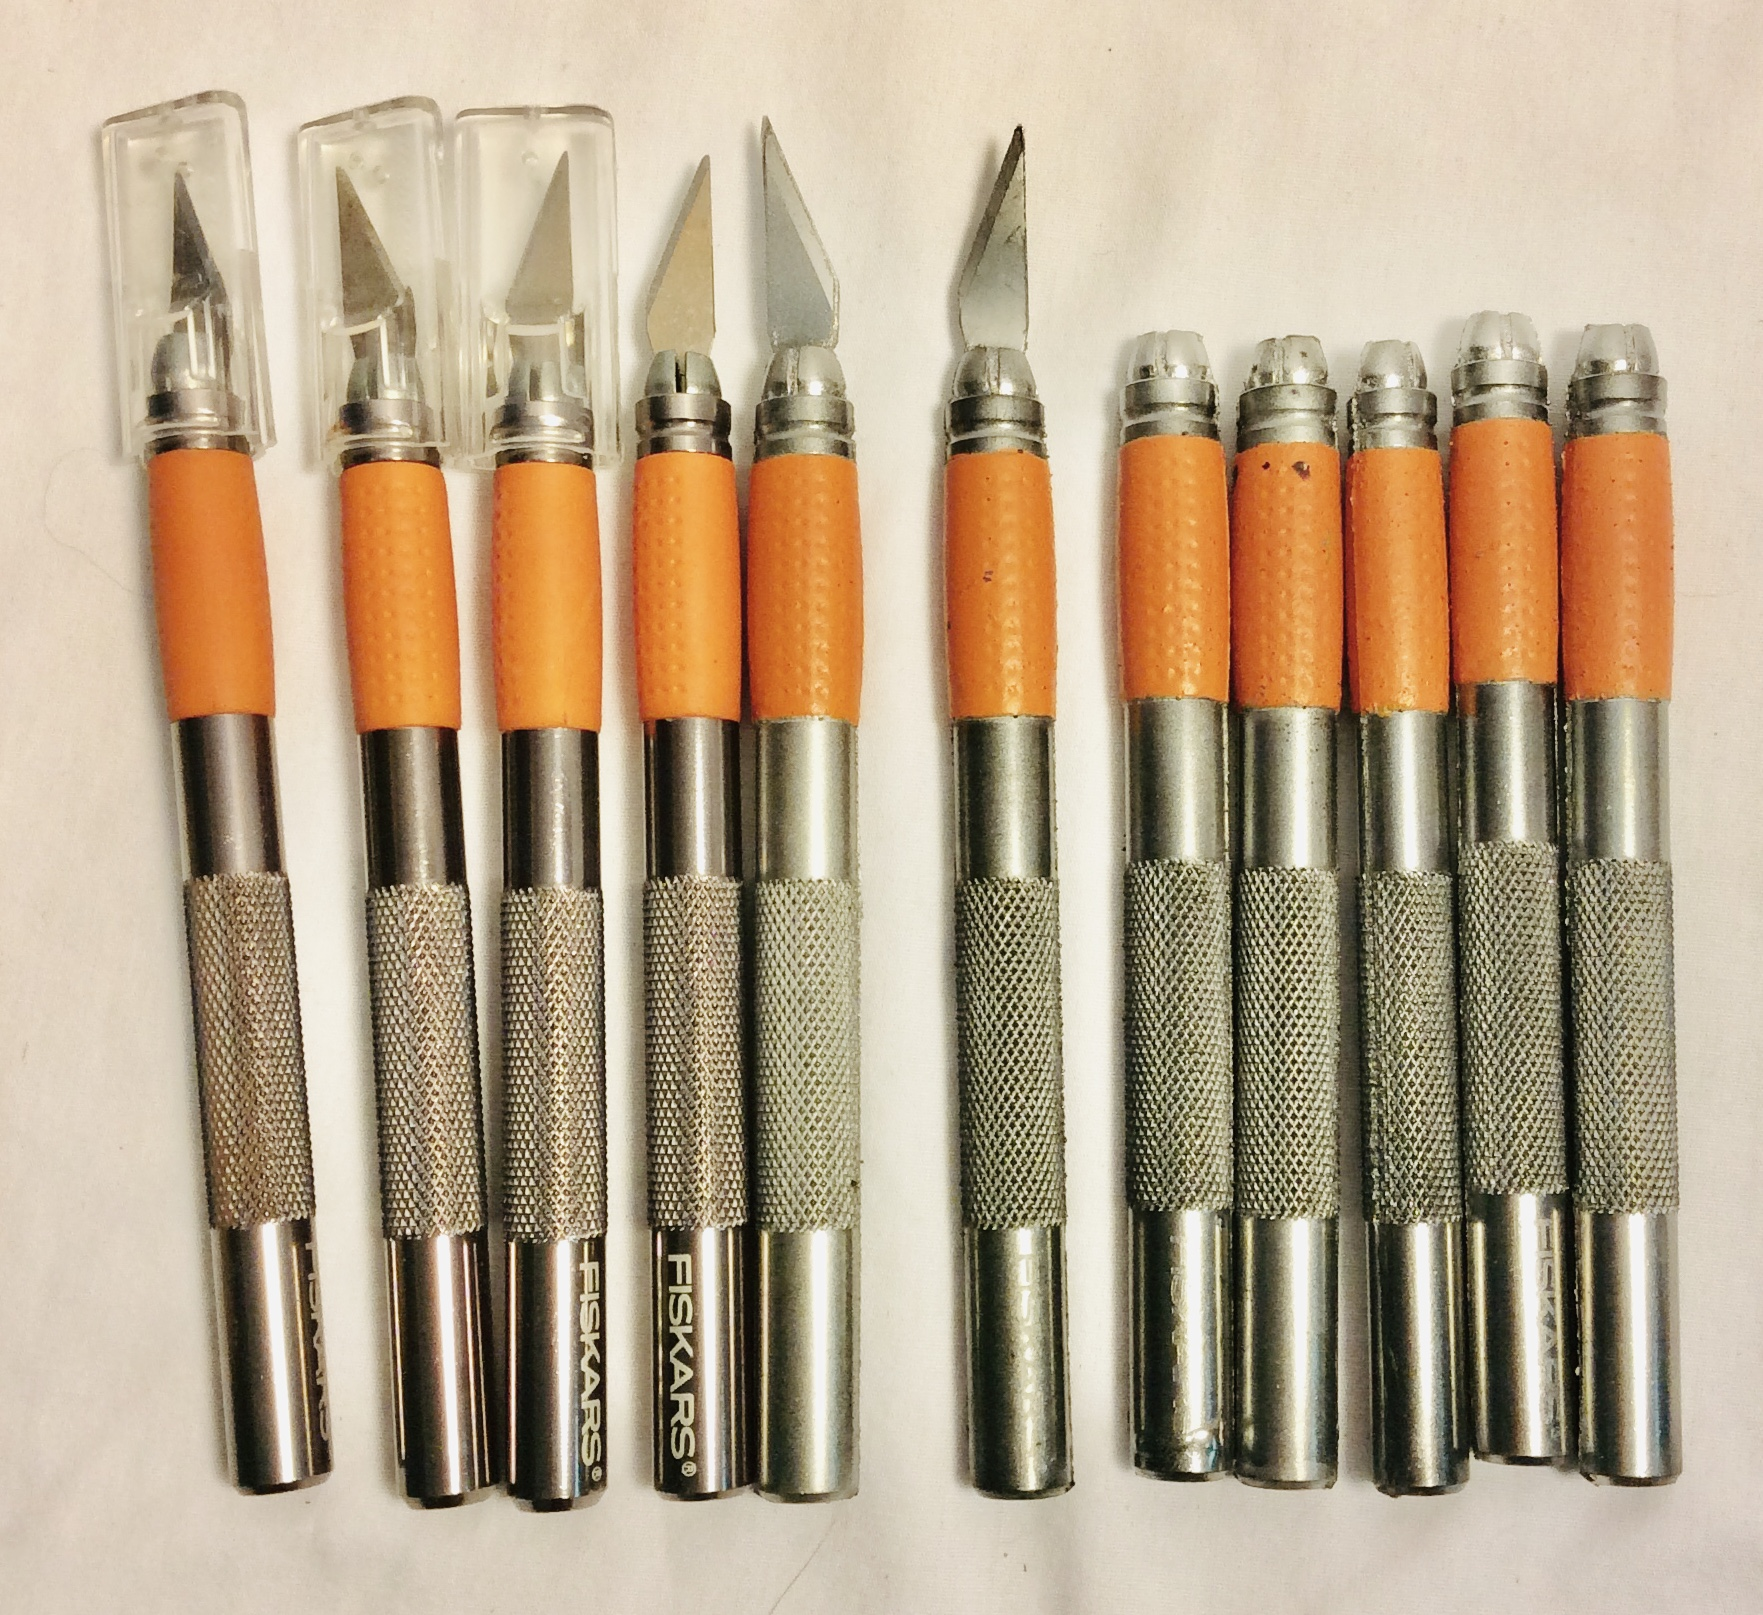 silver and orange x-acto knives (x7 rubber blades, x4 dulled, x2 boxes of sharp blades)